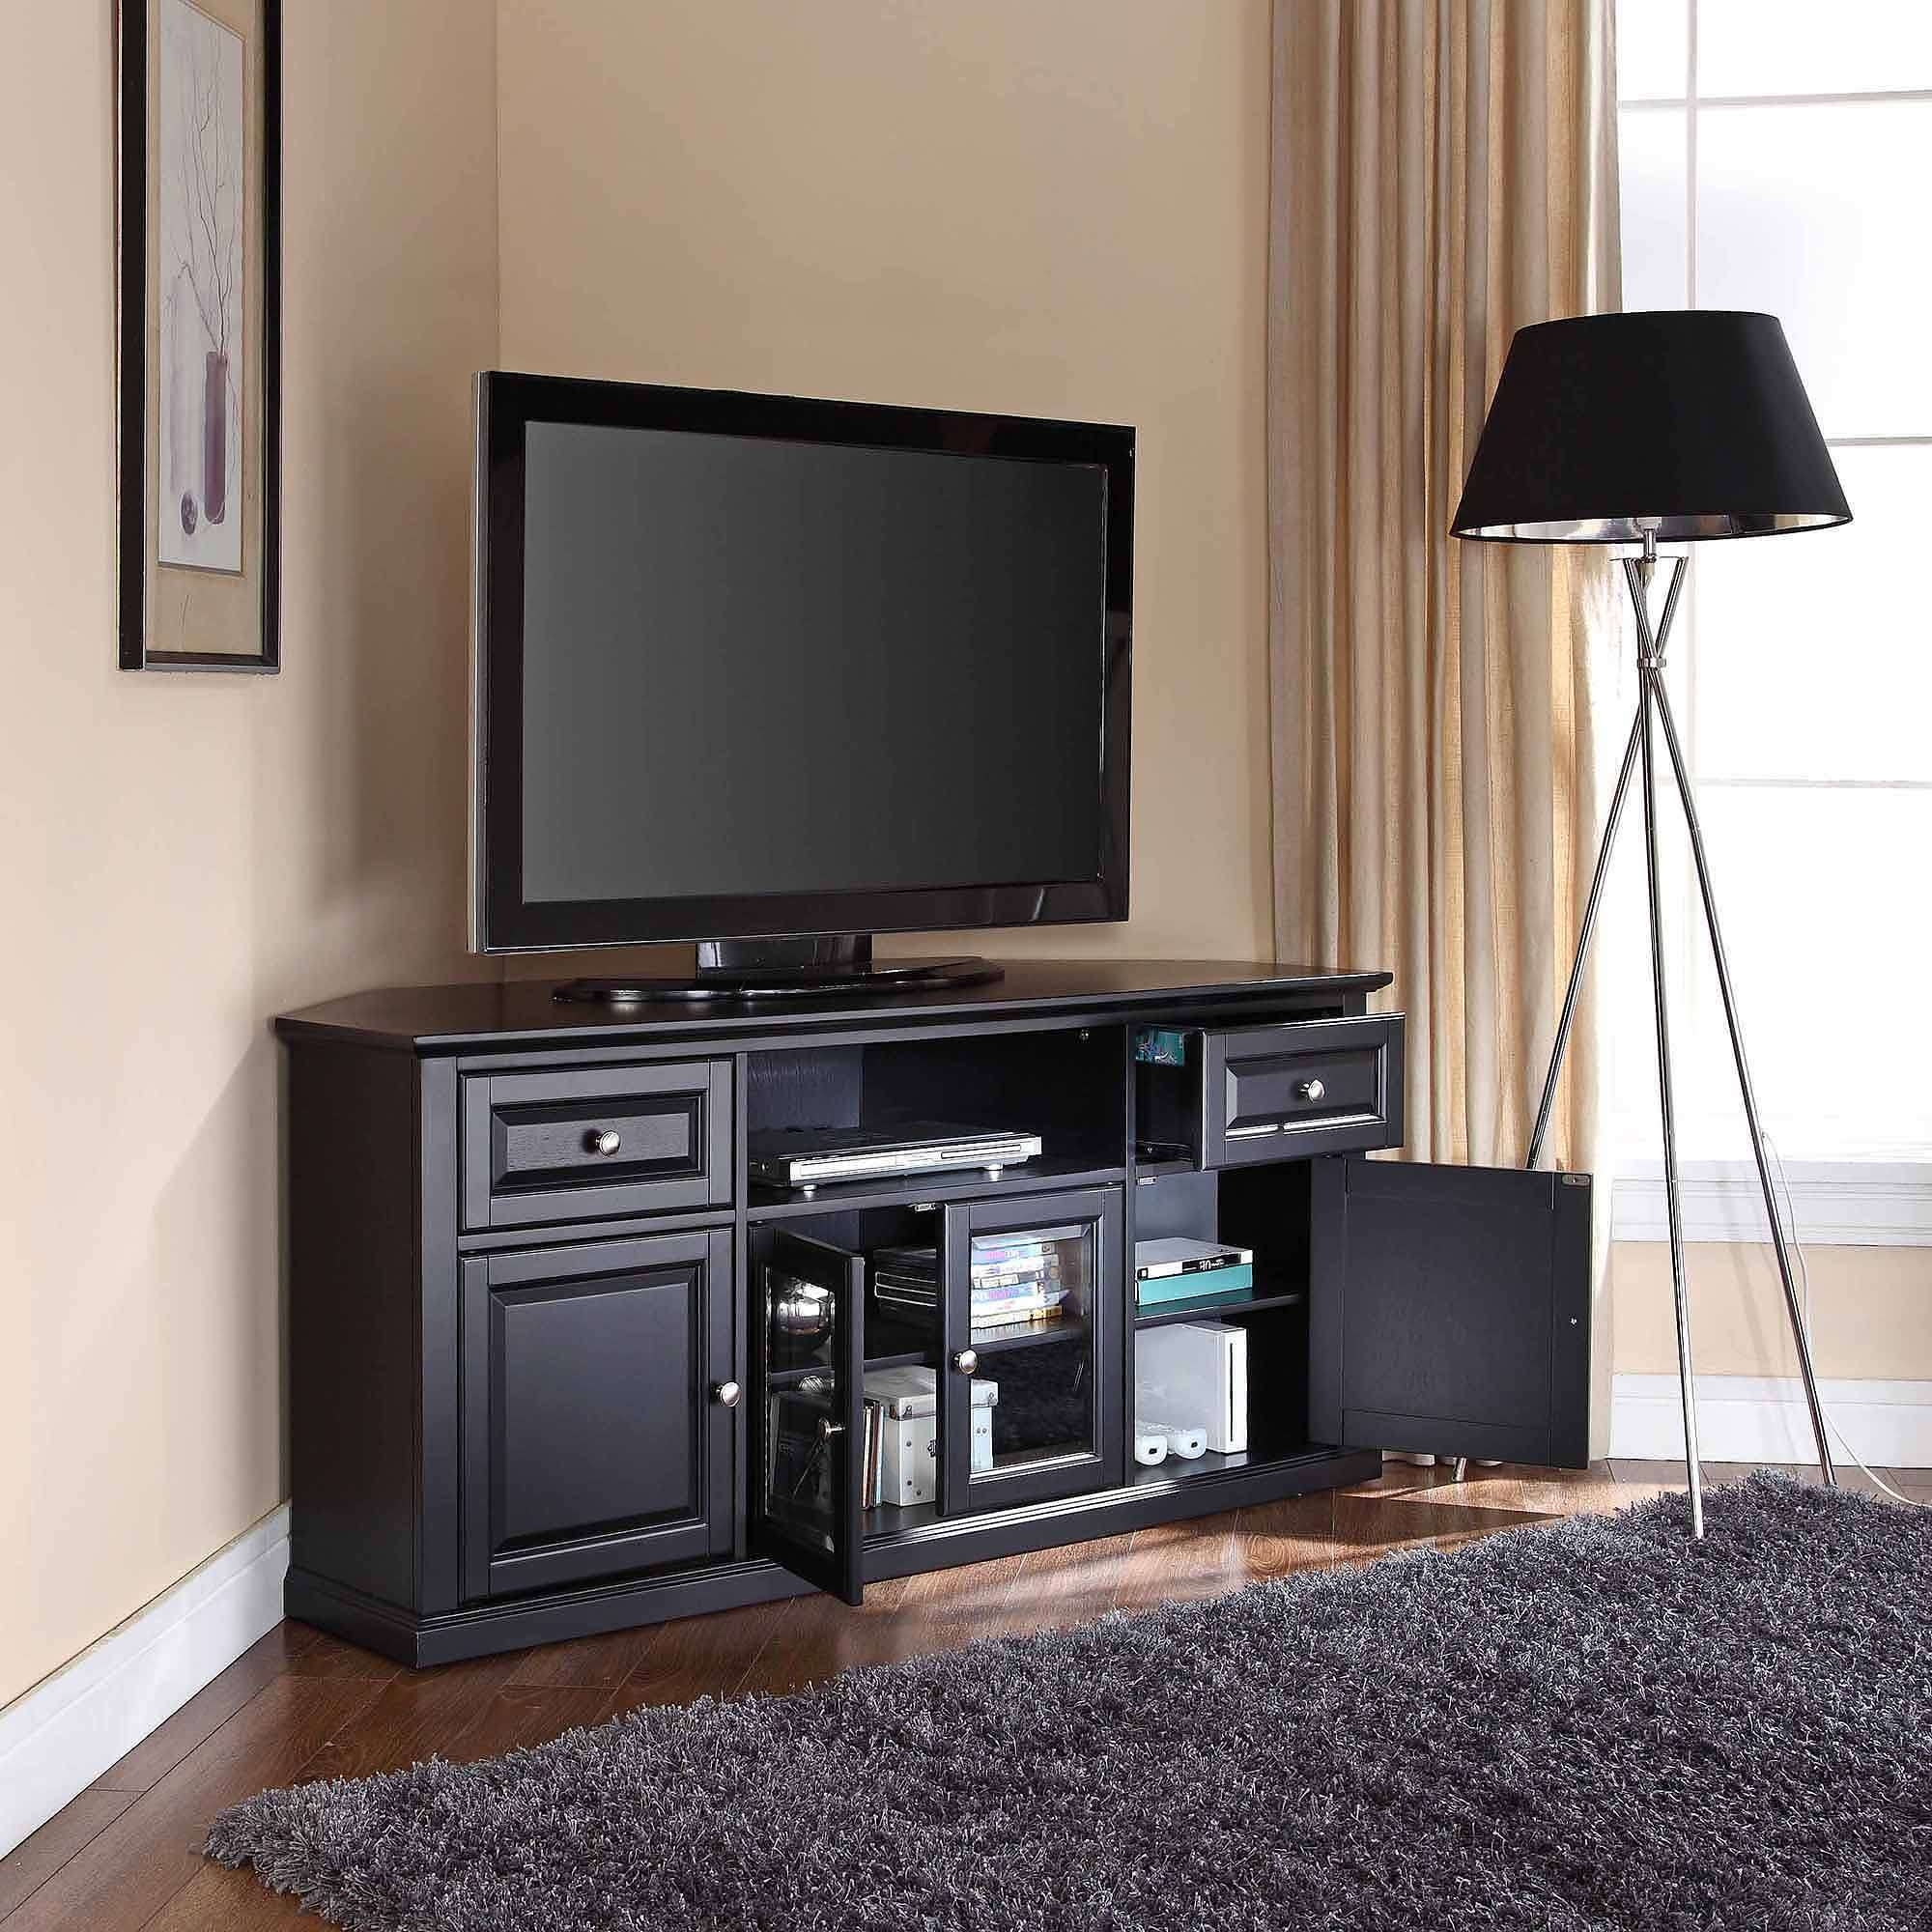 Unique Tv Stands 60 Inch Flat Screens 14 For Your Home Design Intended For Unique Tv Stands For Flat Screens (View 11 of 20)